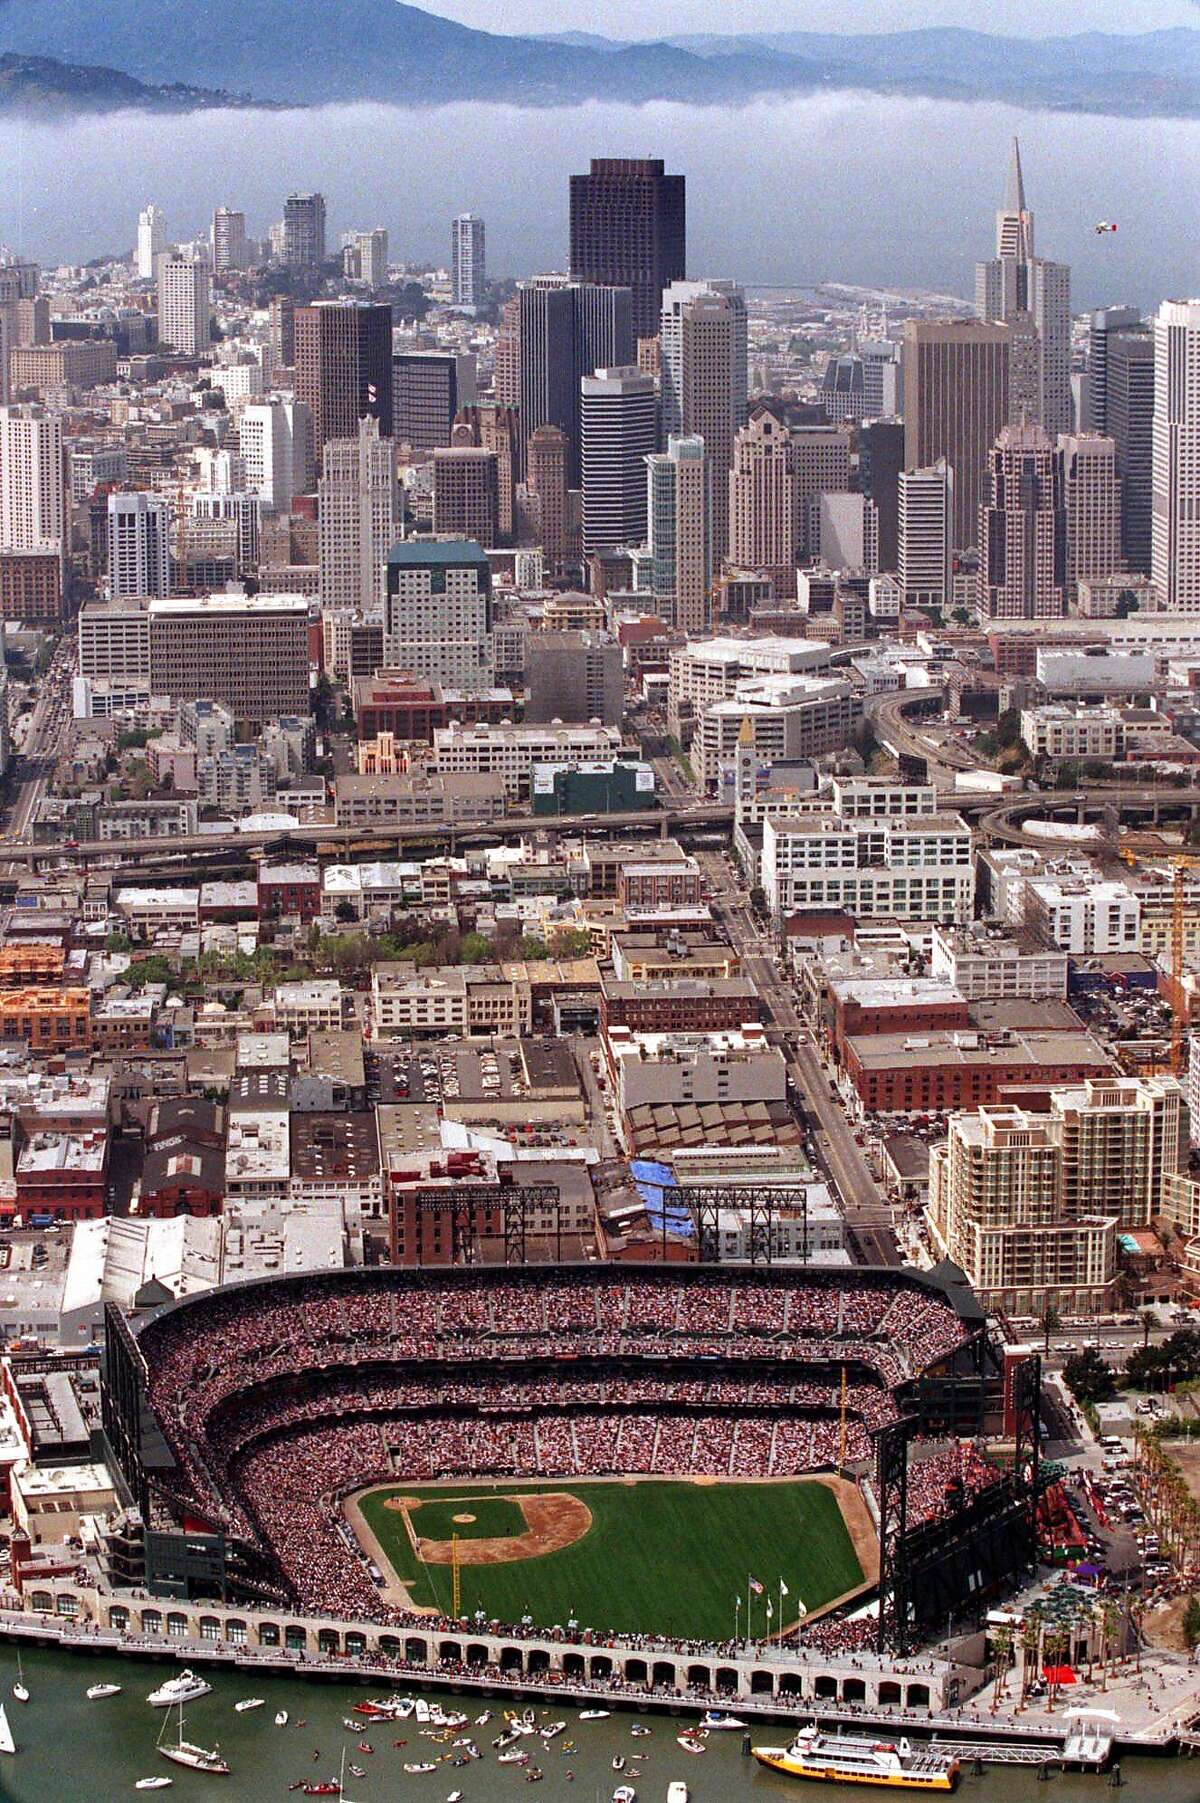 Pacific Bell Park is seen with the San Francisco skyline and Marin Hills in the background in an aerial photograph taken on the San Francisco Giants' home opener Tuesday, April 11, 2000. The Giants' played the Los Angeles Dodgers. (AP Photo/Dan Krauss)